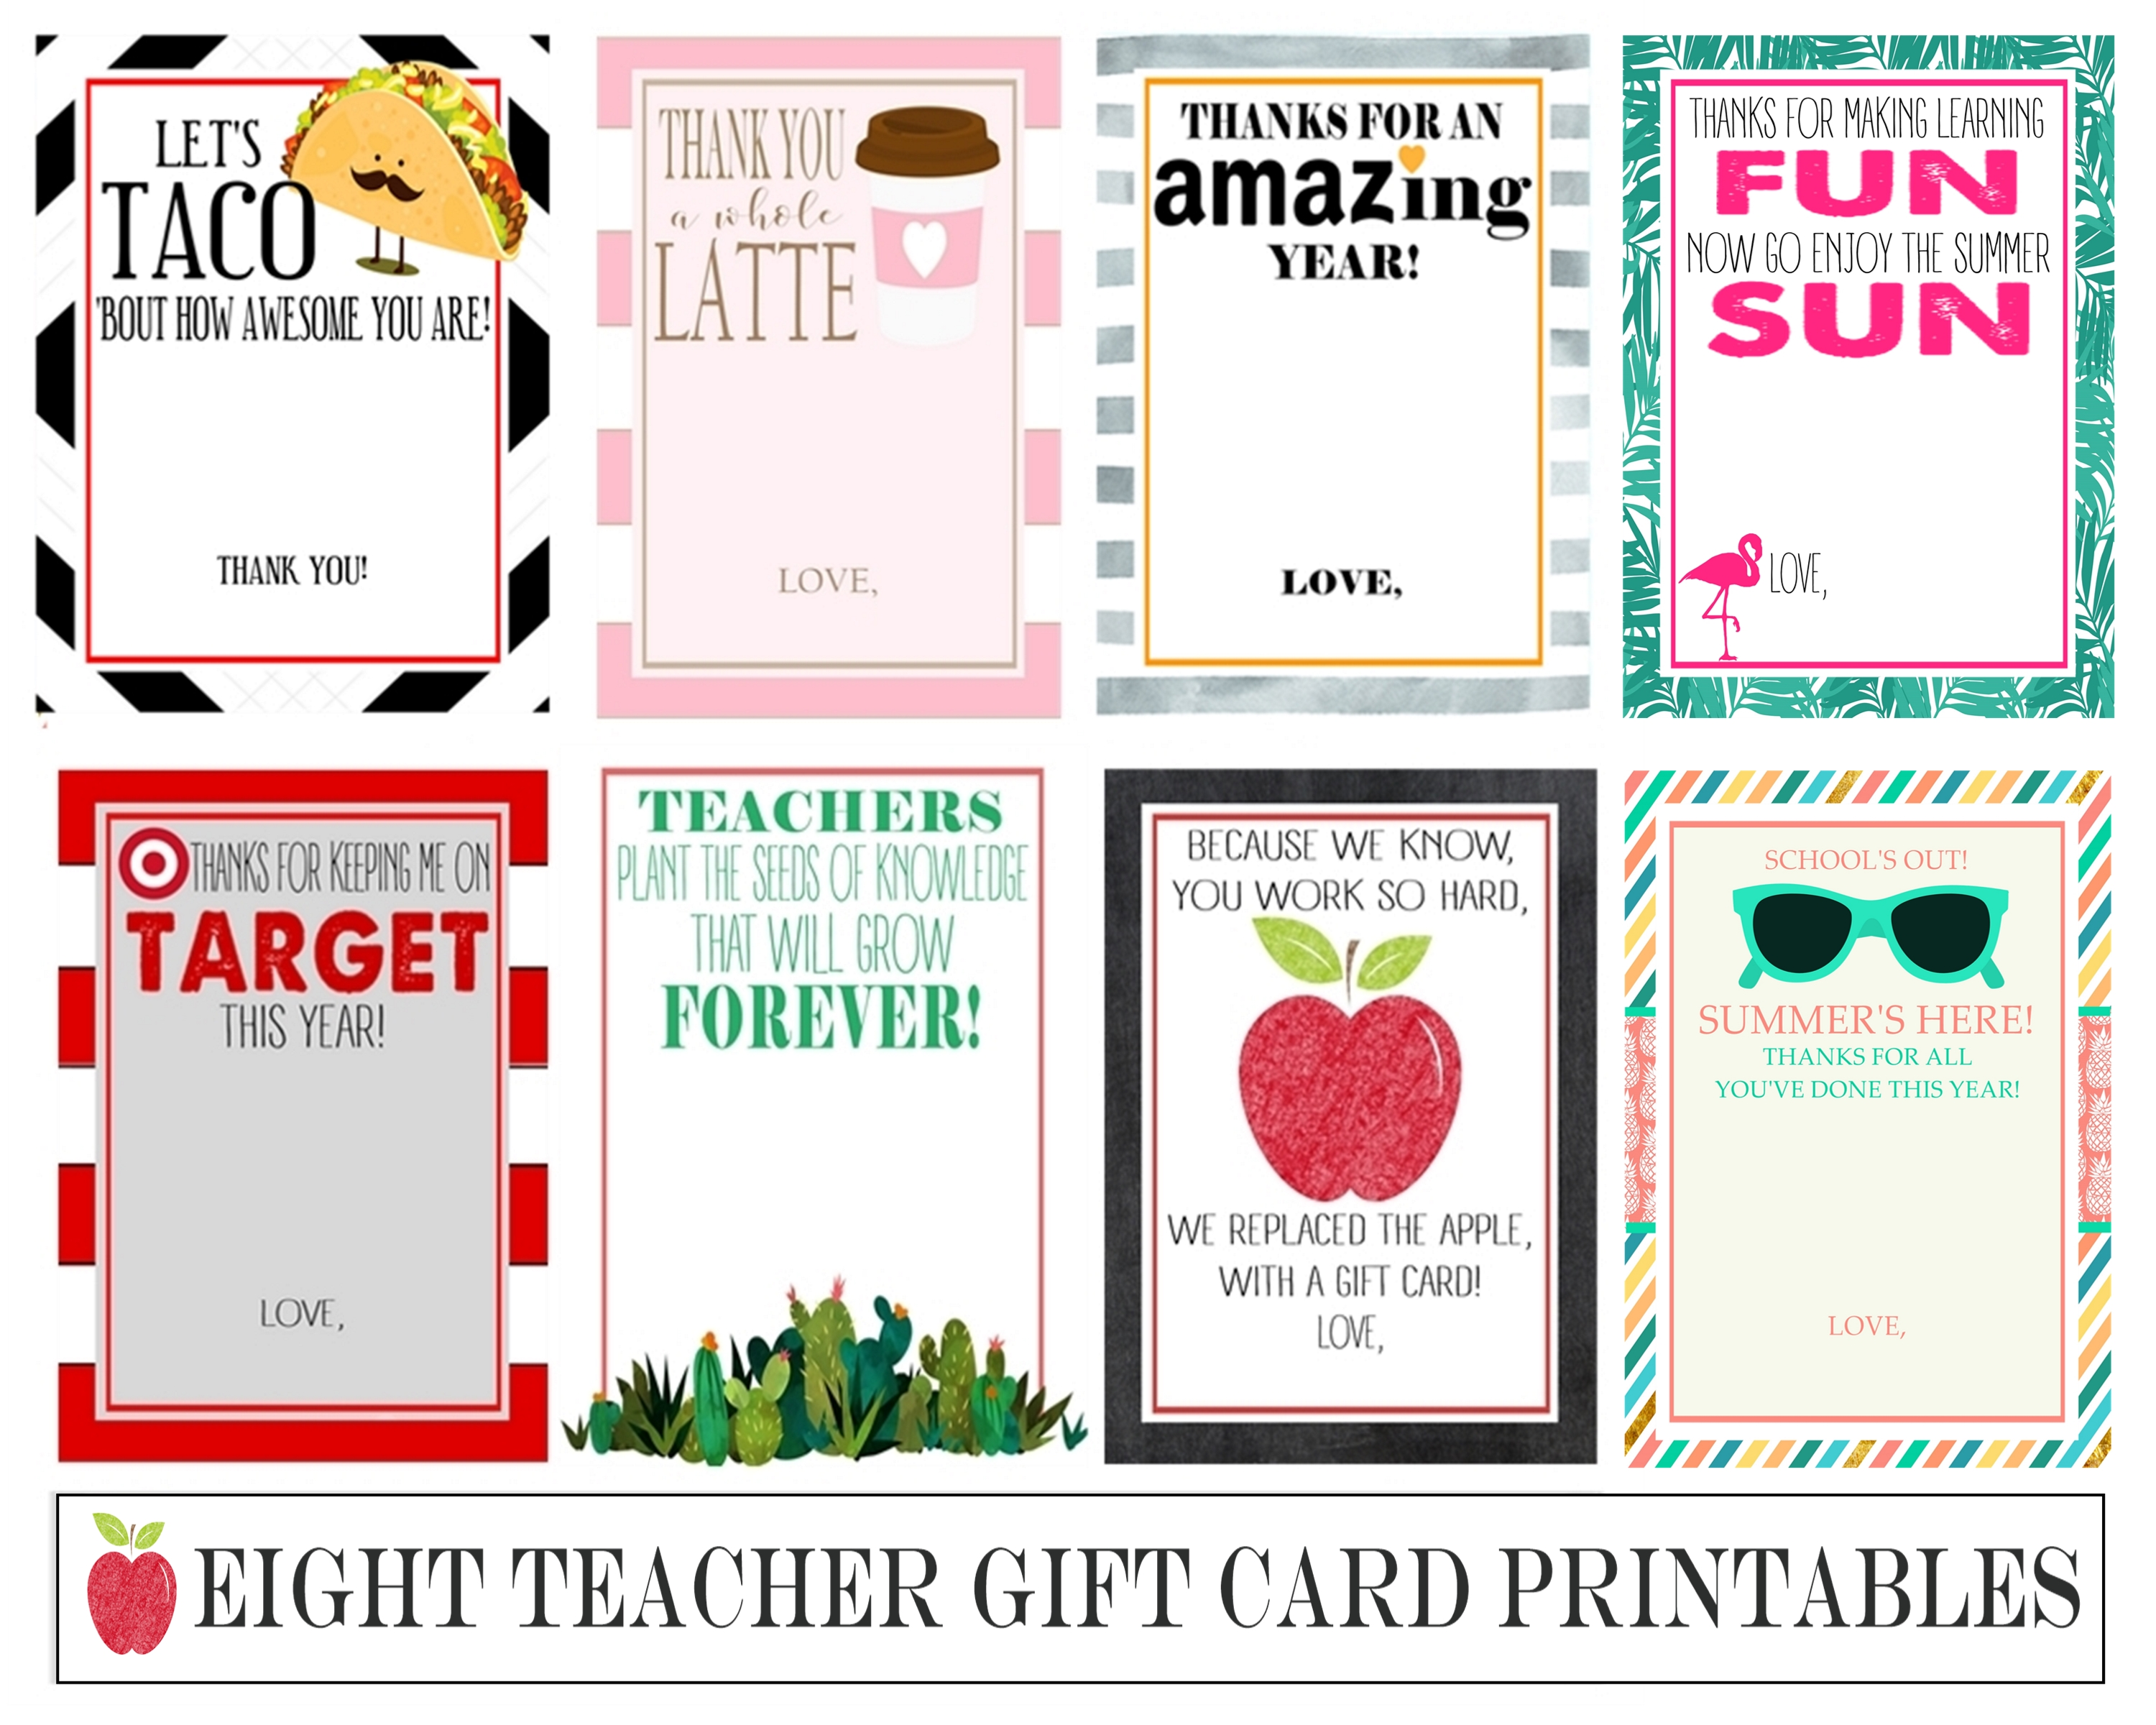 graphic regarding Printable Gifts identify 8 Fast Obtain Trainer Reward Card Printables - Crisp